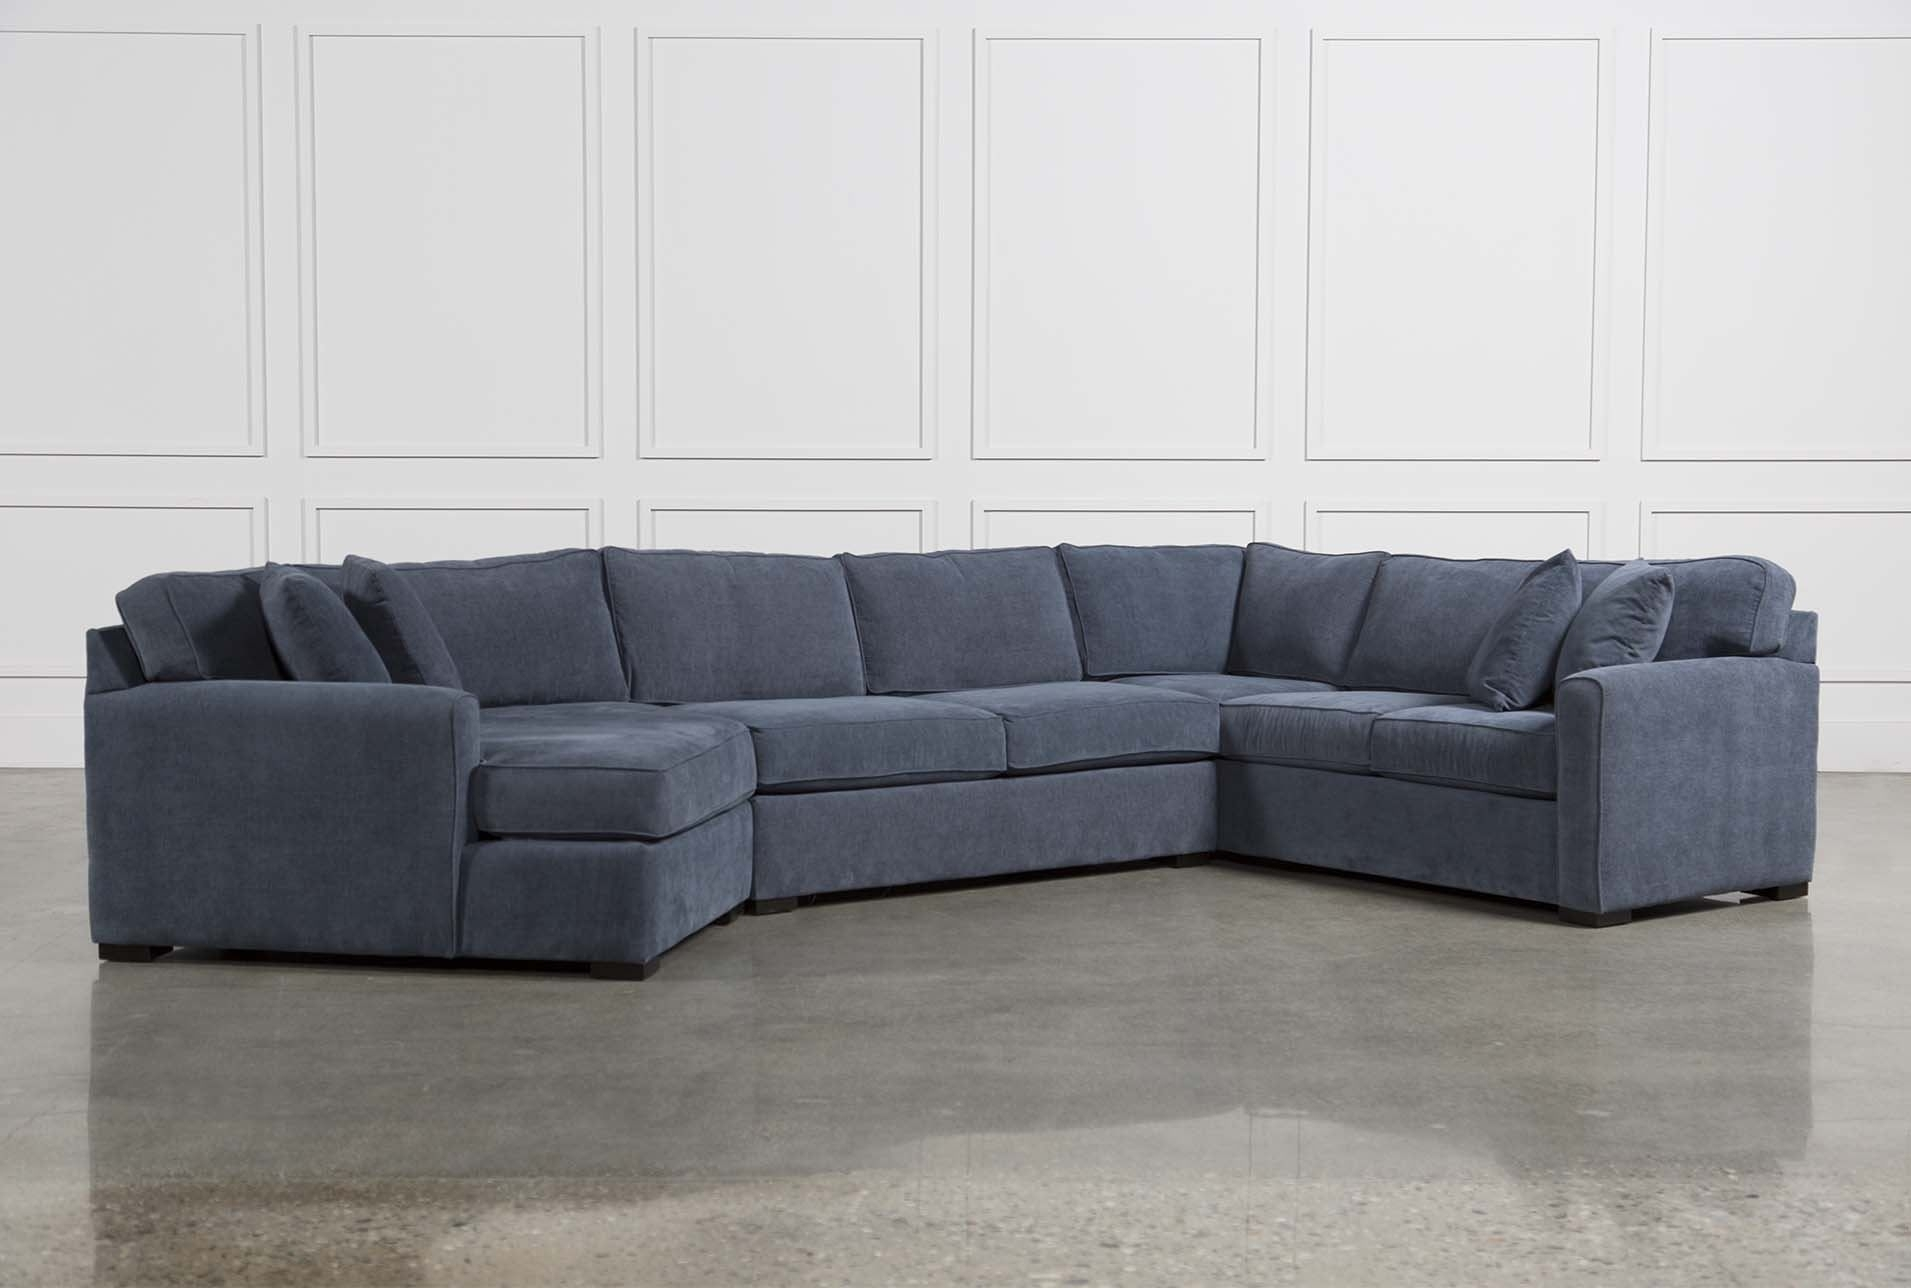 Cypress 3 Piece Sectional | Final Choices | Pinterest | Living pertaining to Aurora 2 Piece Sectionals (Image 14 of 30)